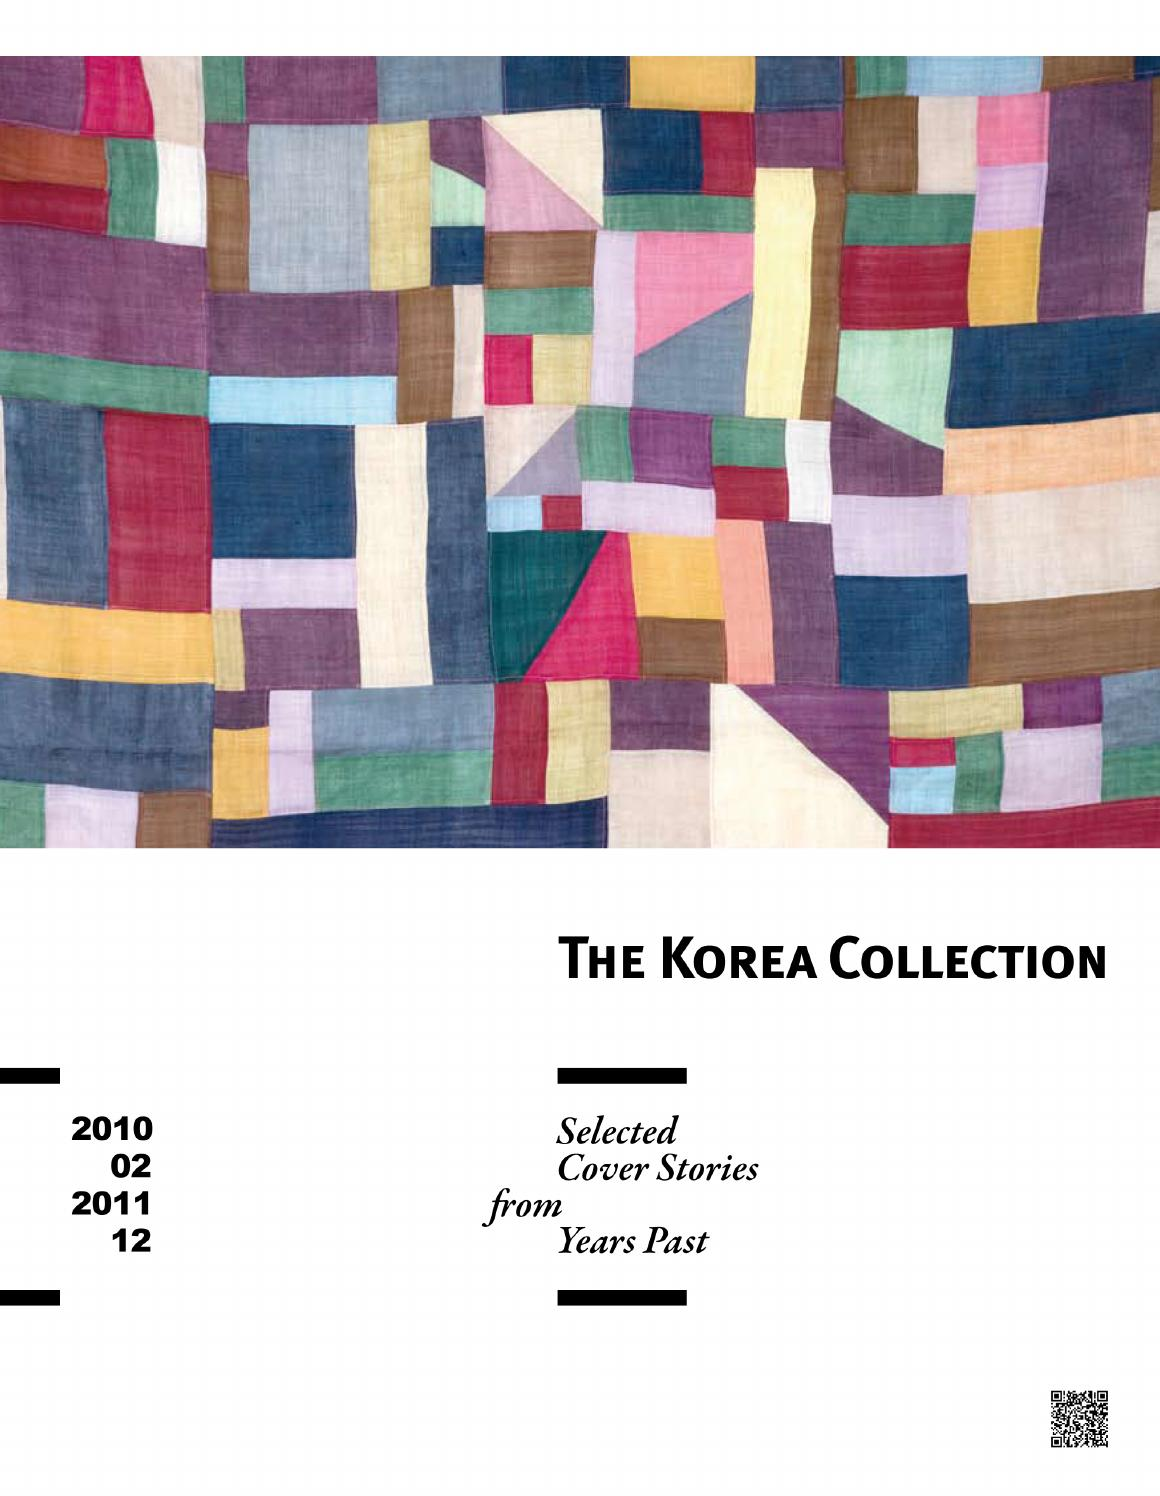 201203 the korea collection by KOCIS issuu